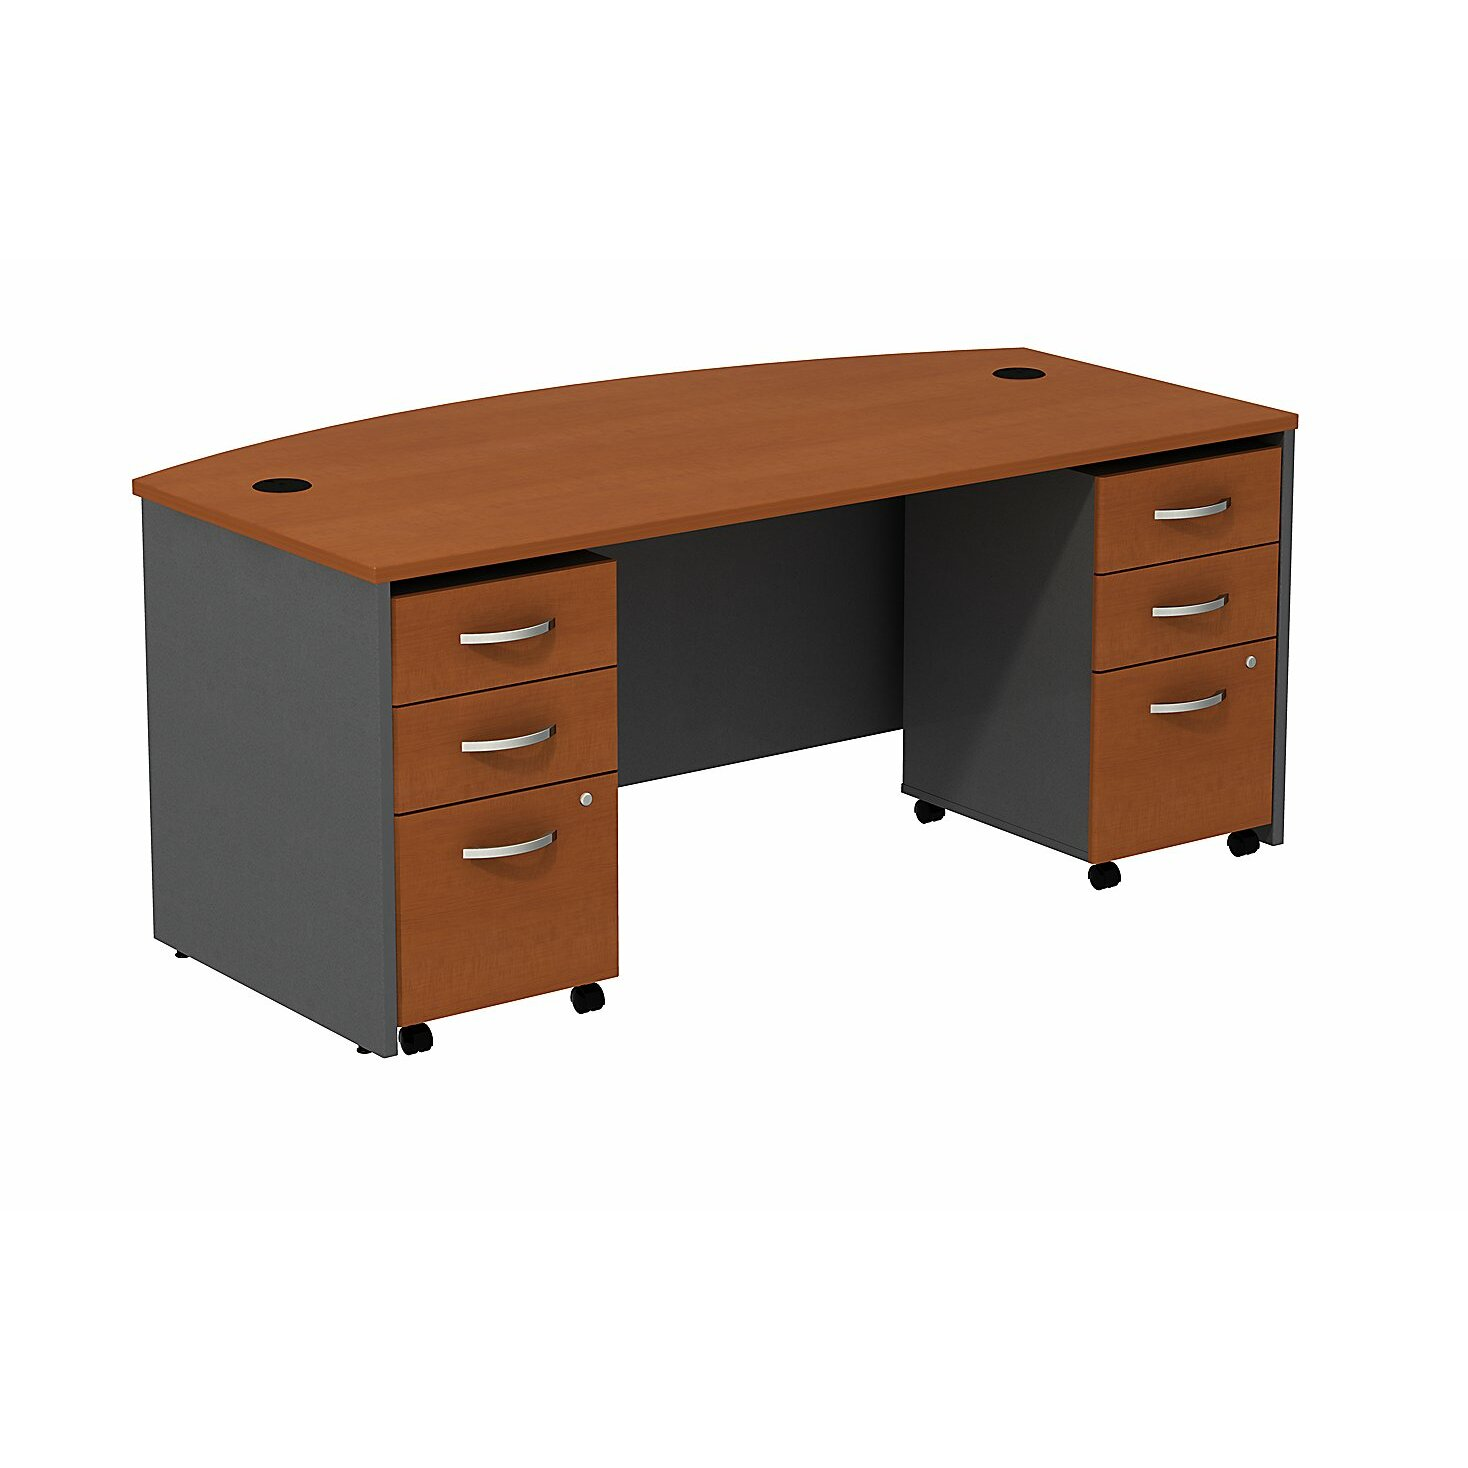 Bush Business Furniture Series C Bow Front Office Desk Shell With 2 Mobile Pedestals Reviews